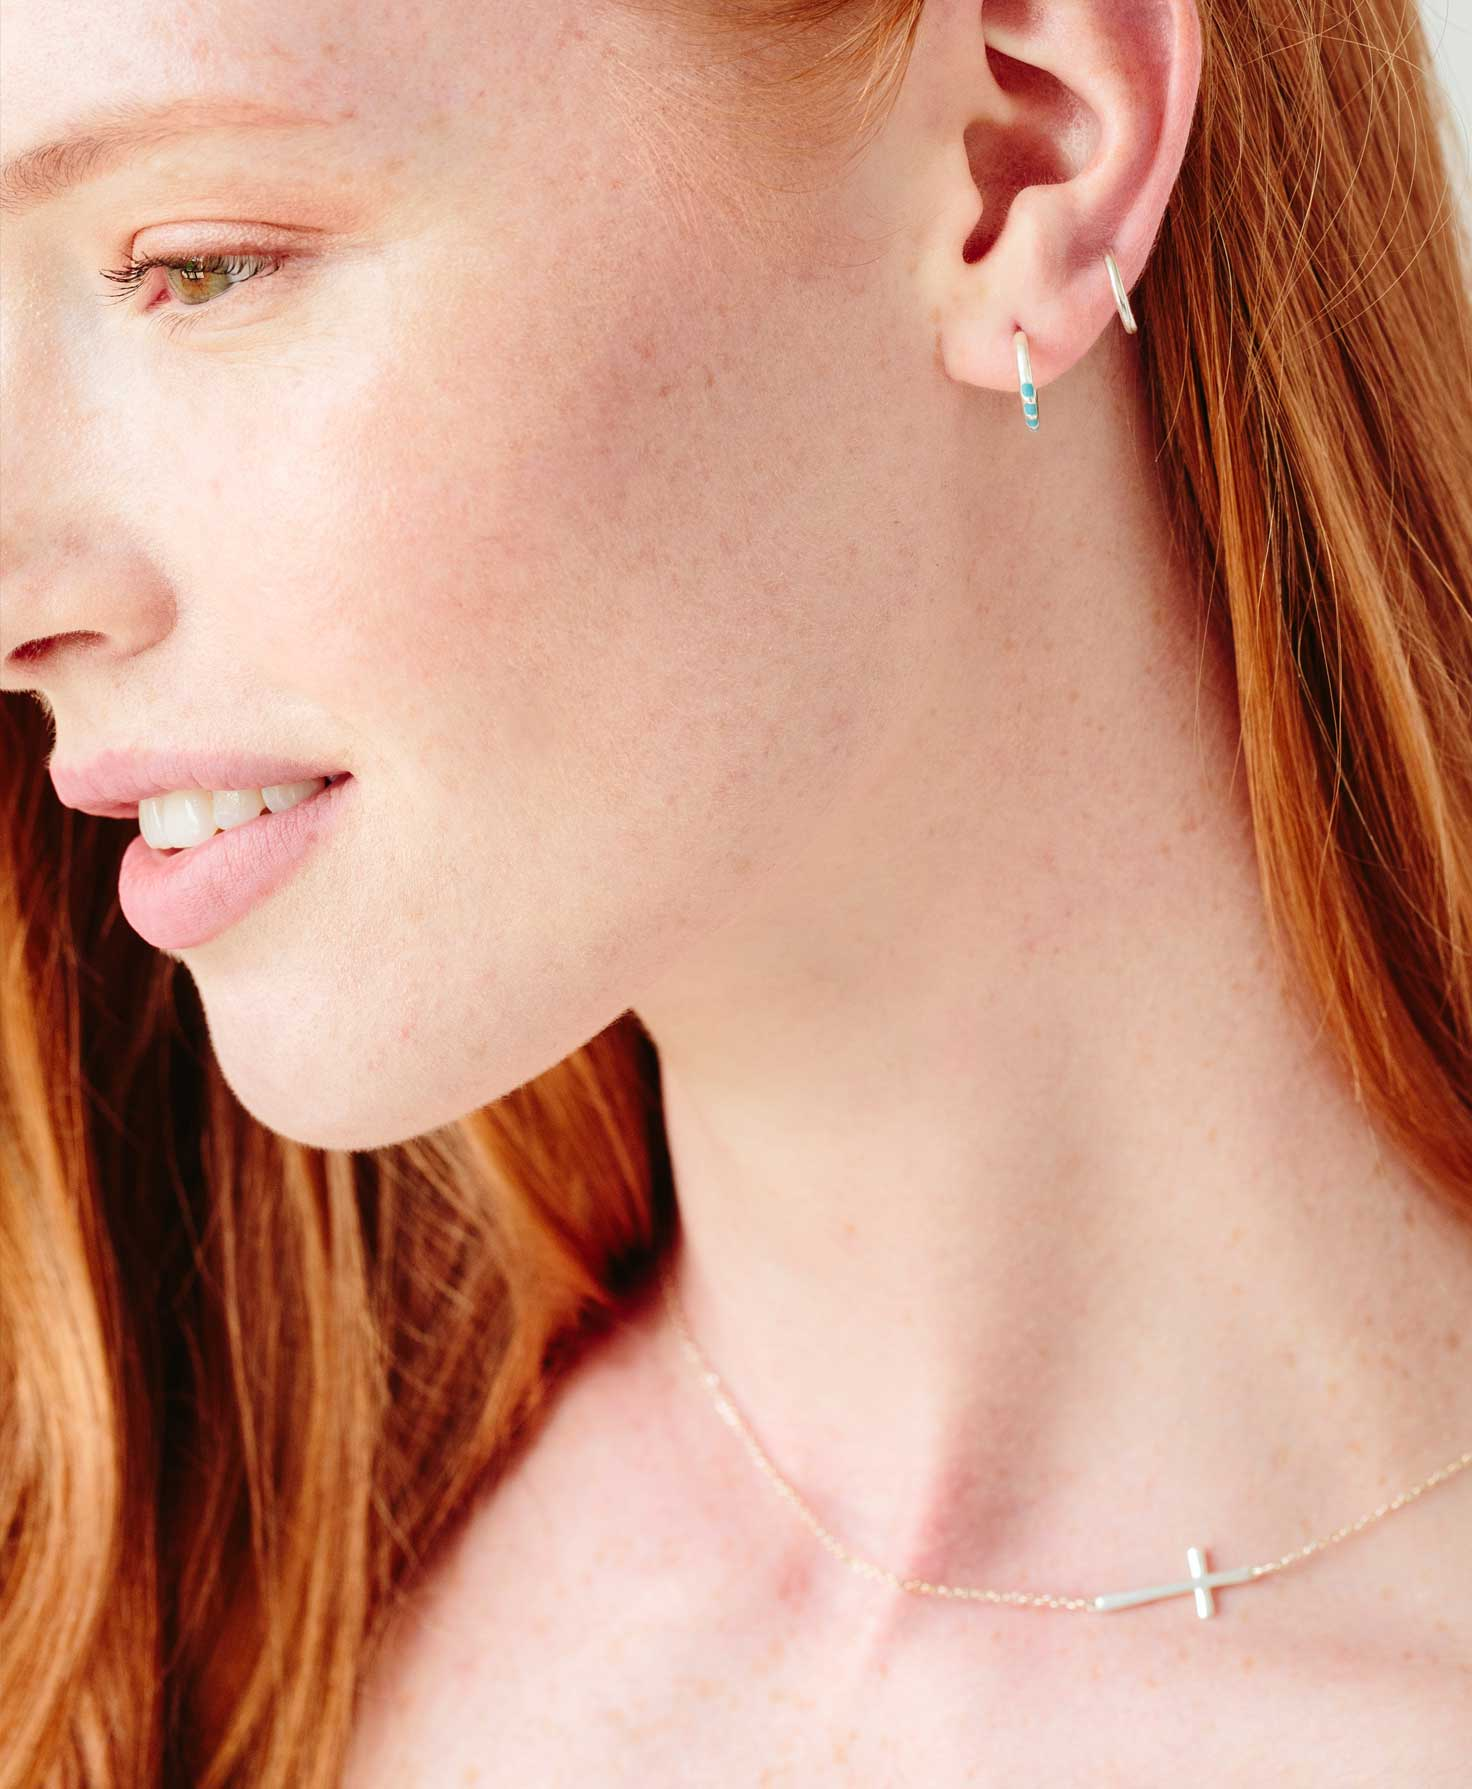 For a simple everyday feel, a model wears the Belief Necklace in Silver by itself. She accents the look with a pair of silver dainty hoops.